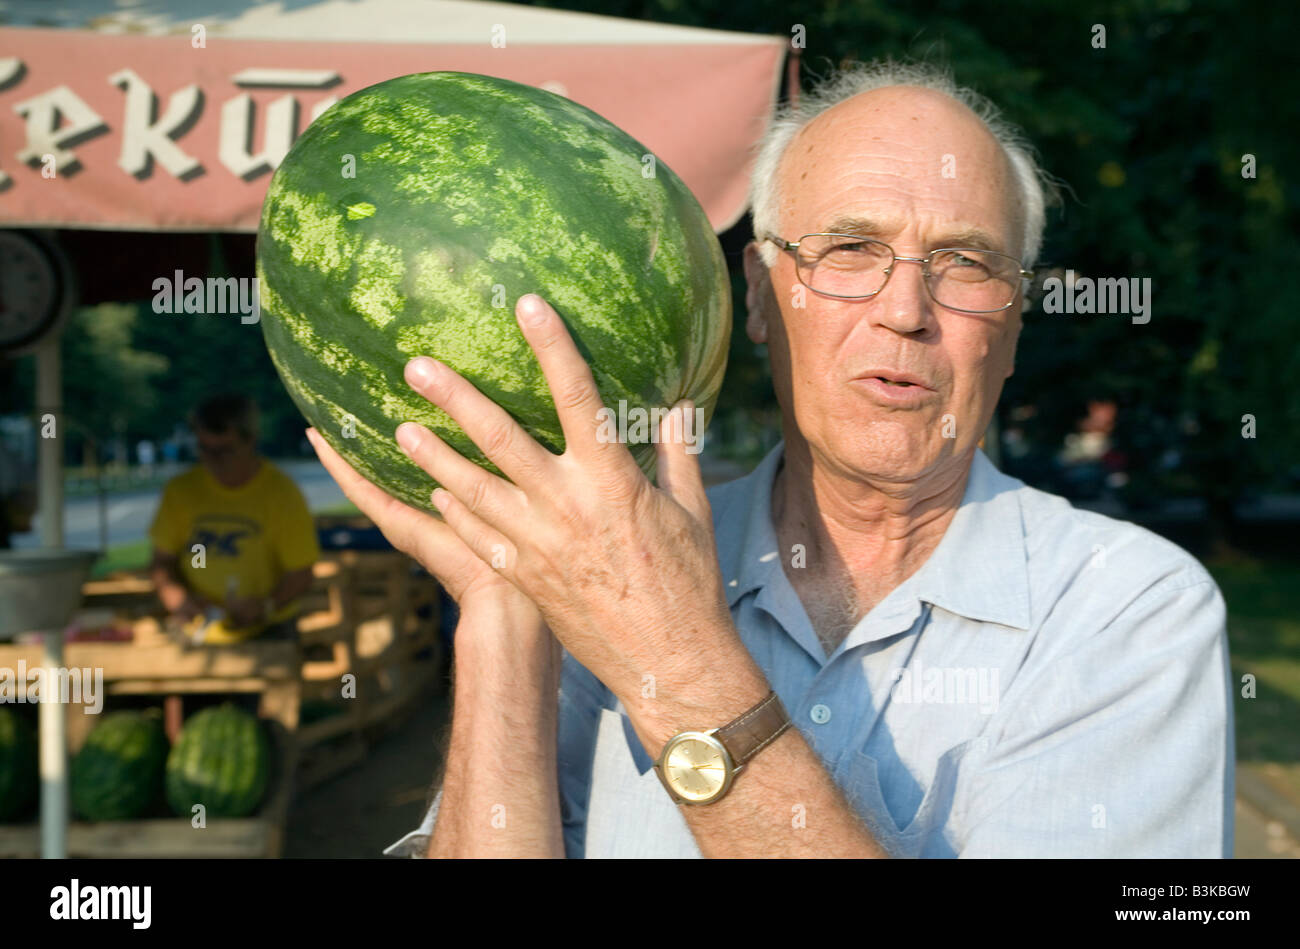 Elderly man with a watermelon just bought from a roadside grocer - Stock Image